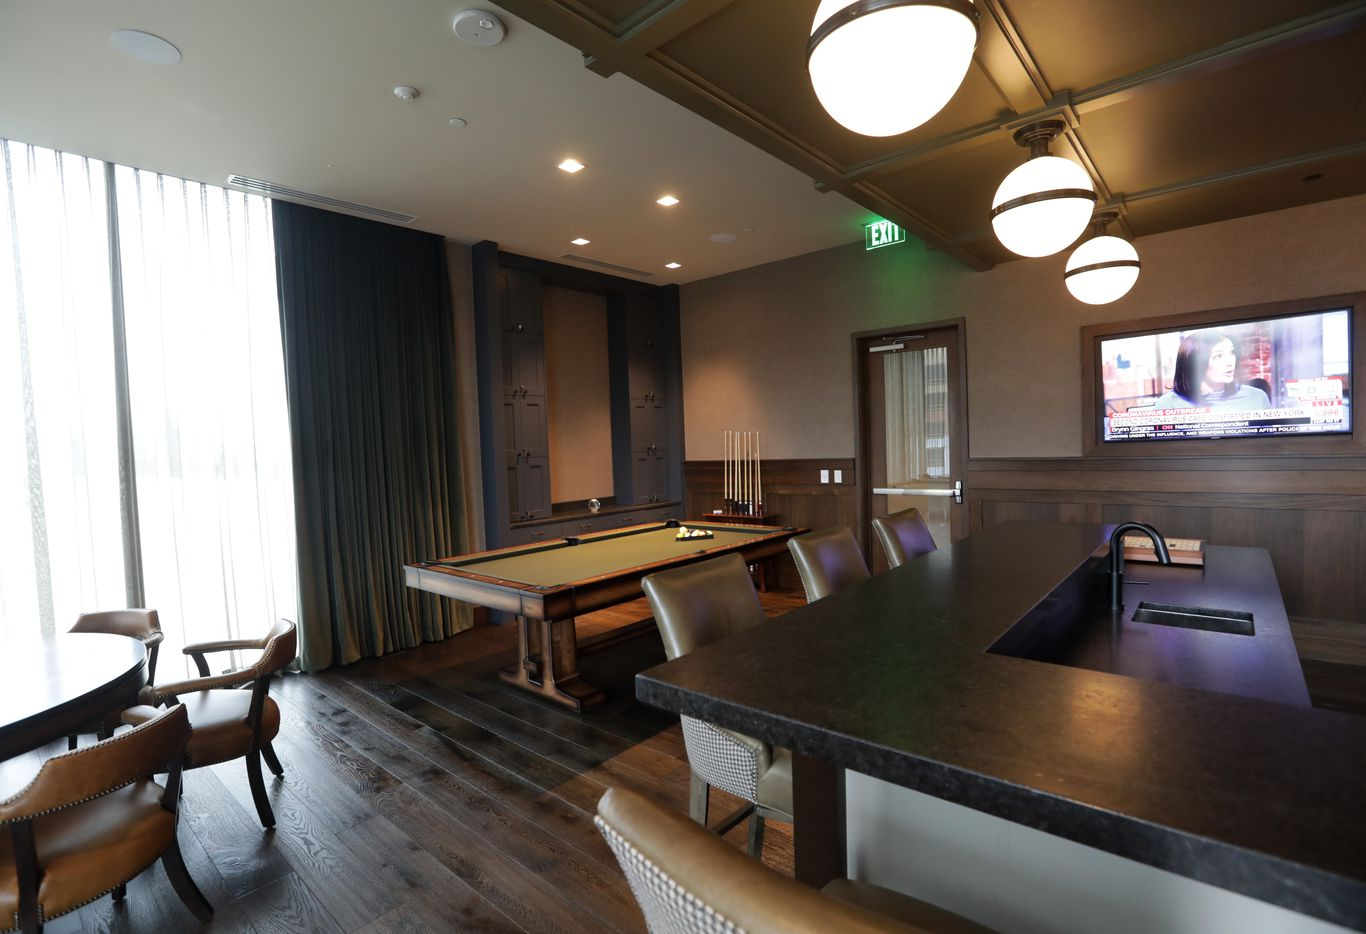 The gameroom and pub at Windrose Tower in Plano. (Jason Janik/Special Contributor)